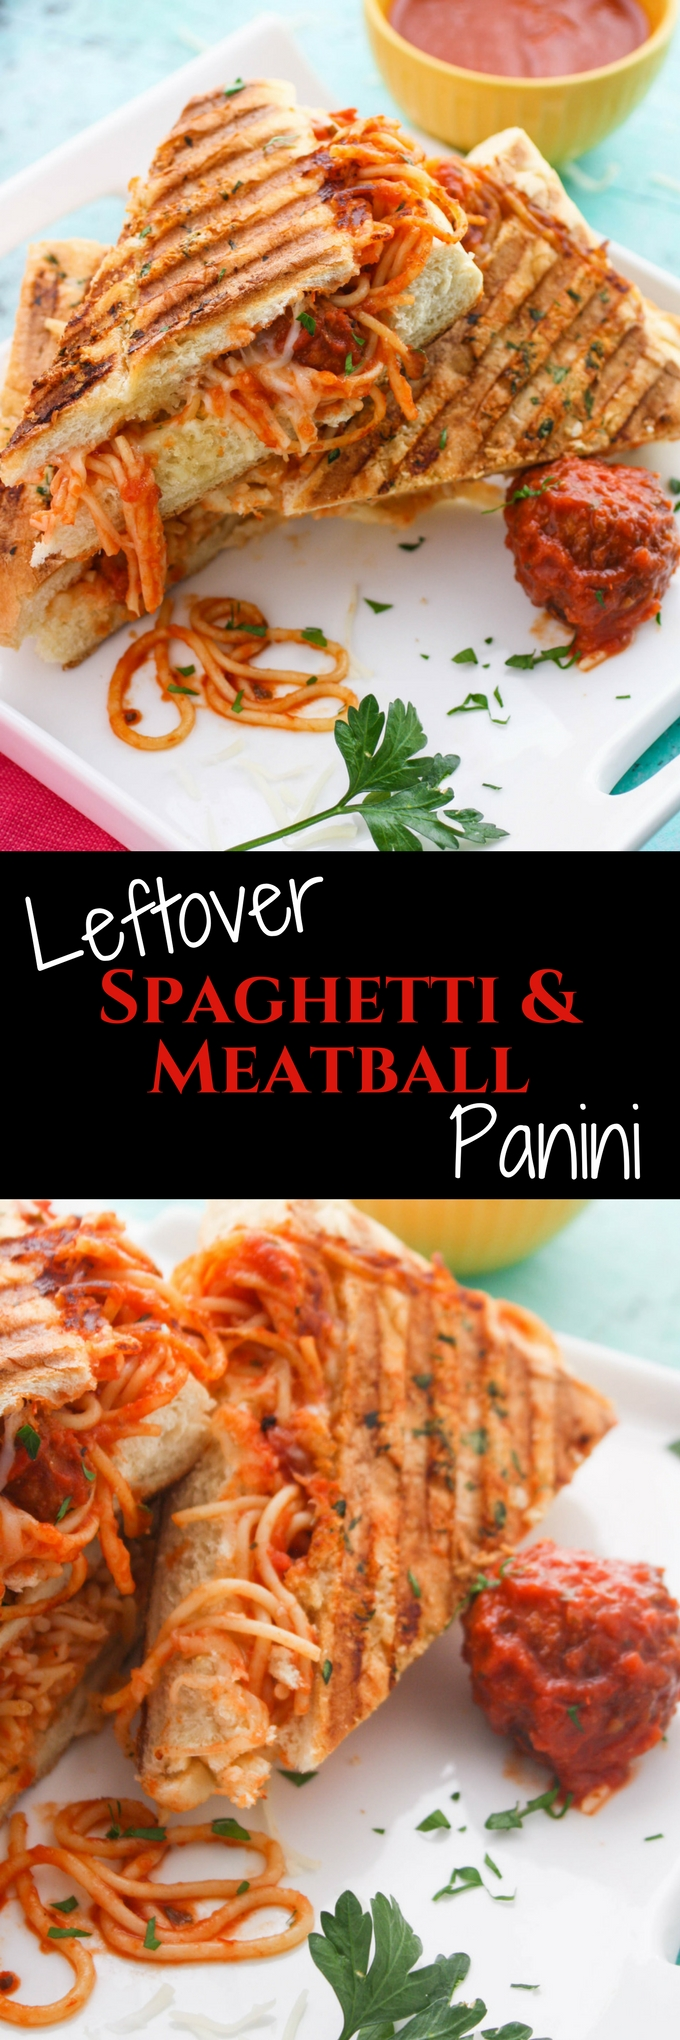 Leftover Spaghetti & Meatball Panini is a fun dish to use up last night's dinner! You'll love this fun dish!